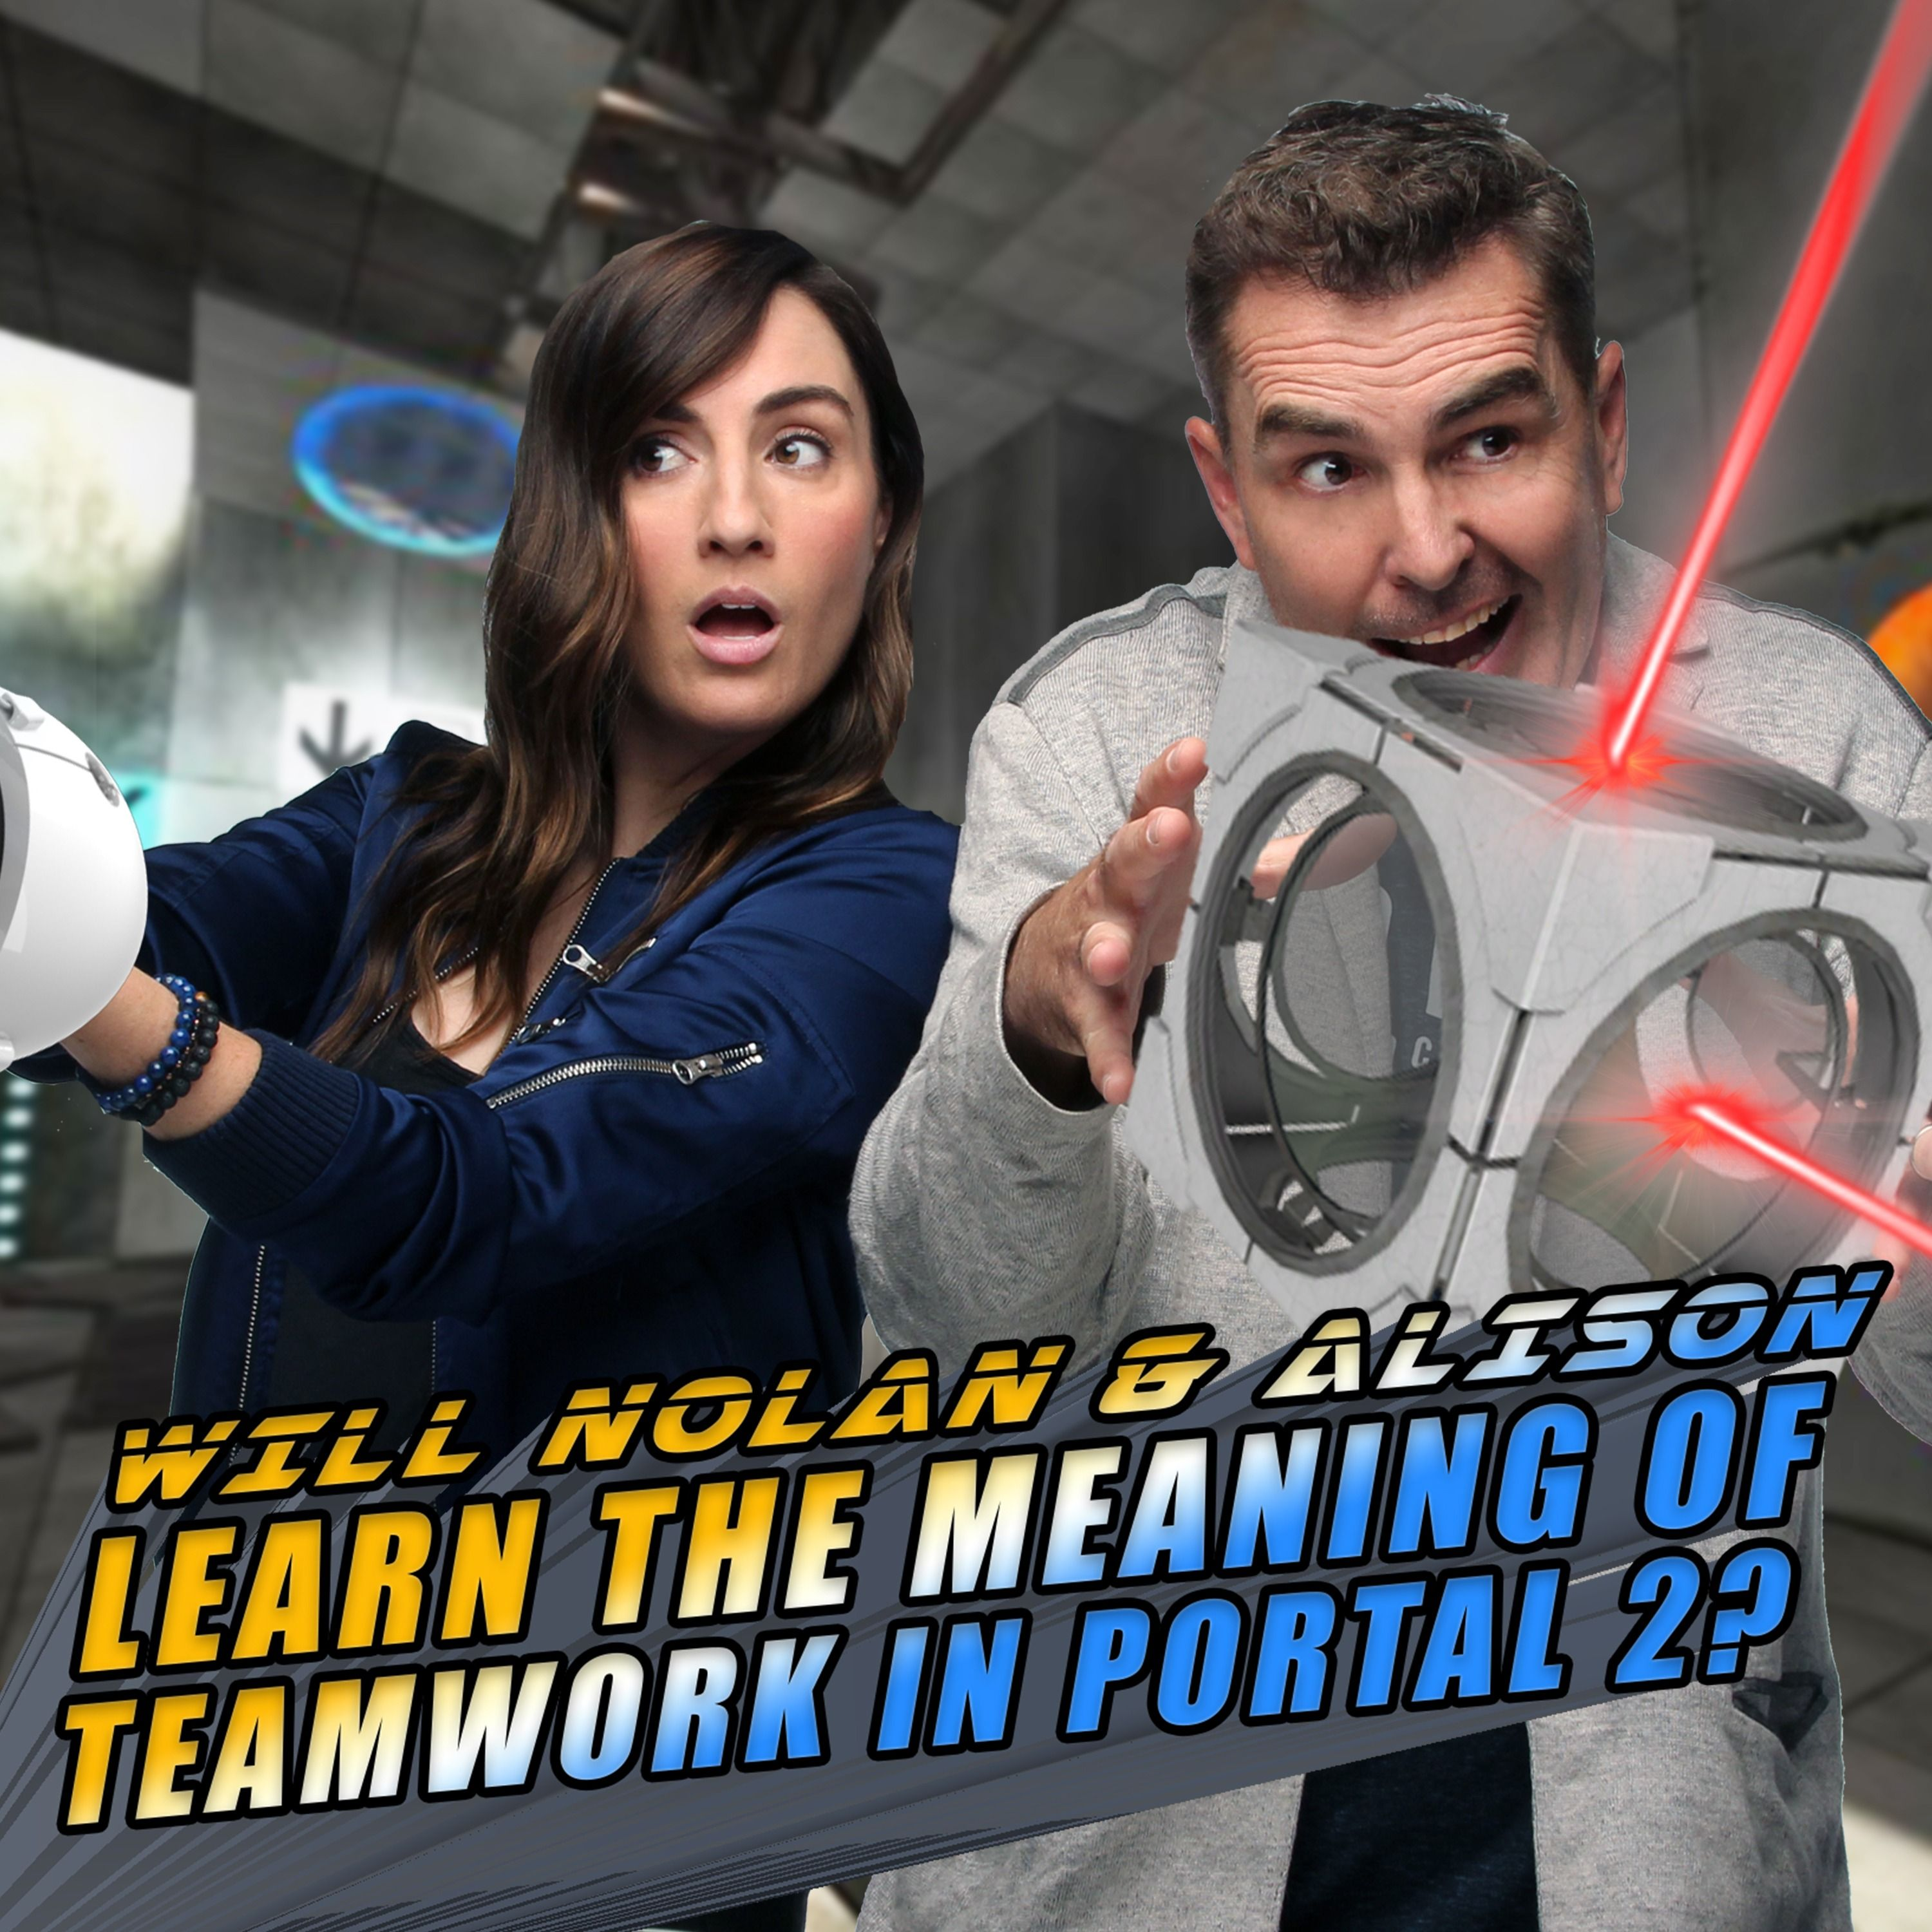 Will Nolan North and Alison Haislip Learn the Meaning of Teamwork in Portal 2? | Retro Replay